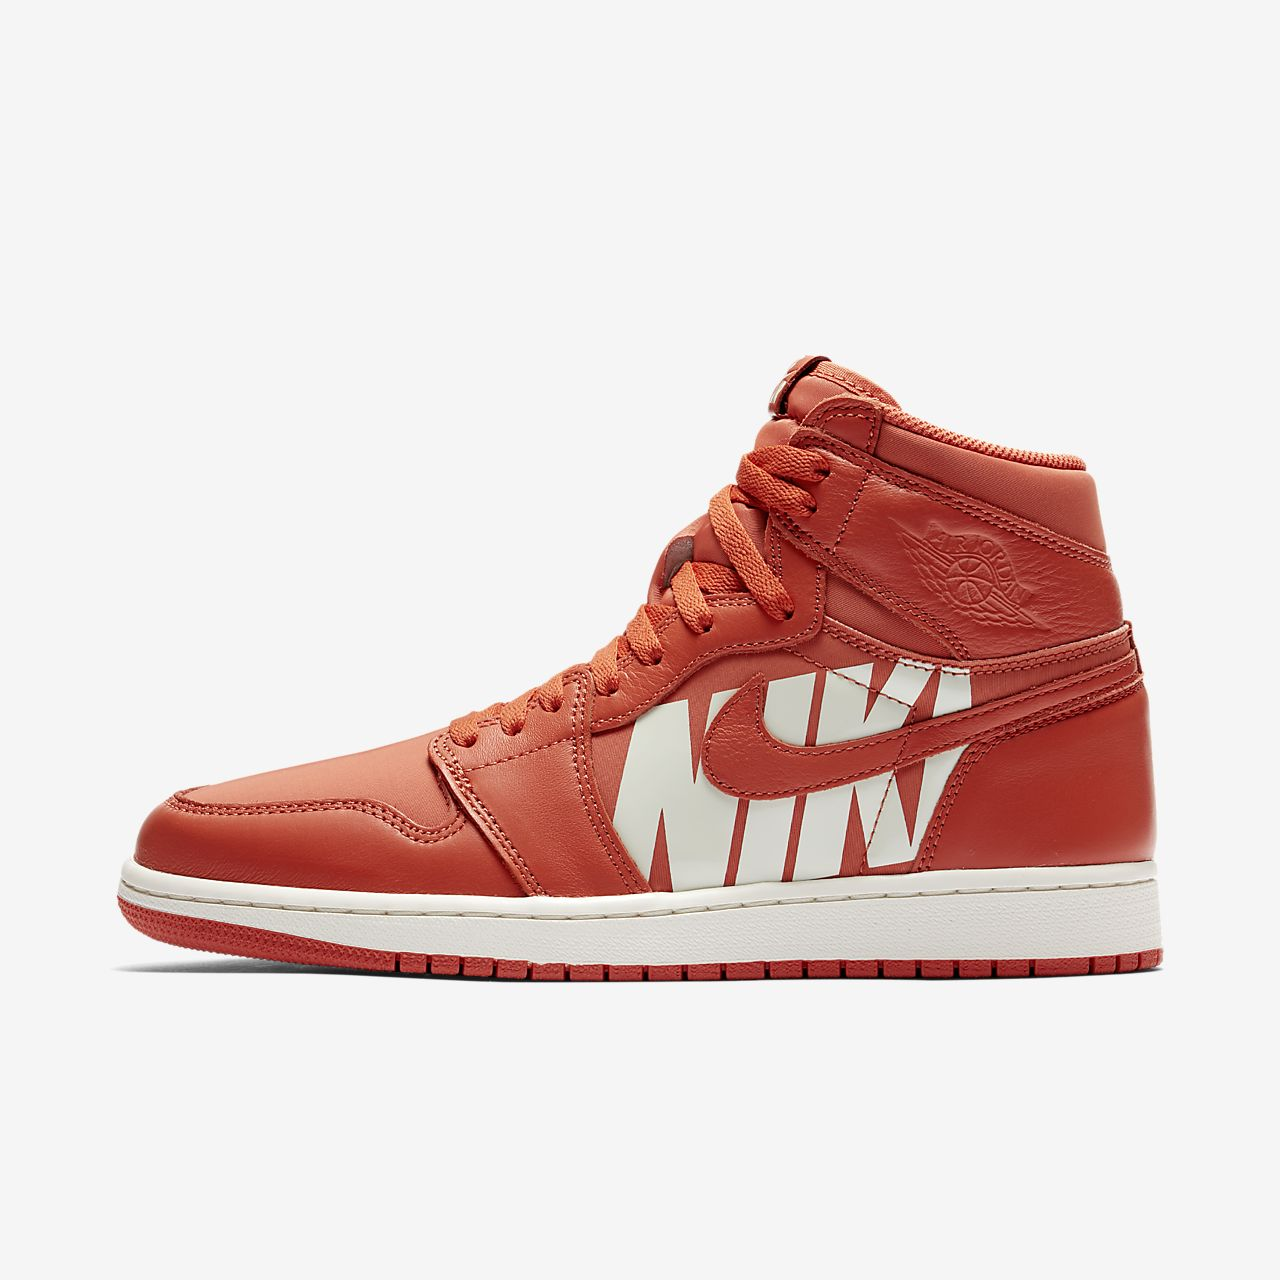 9a2a92ea00e7 Air Jordan 1 Retro High OG Shoe. Nike.com AU